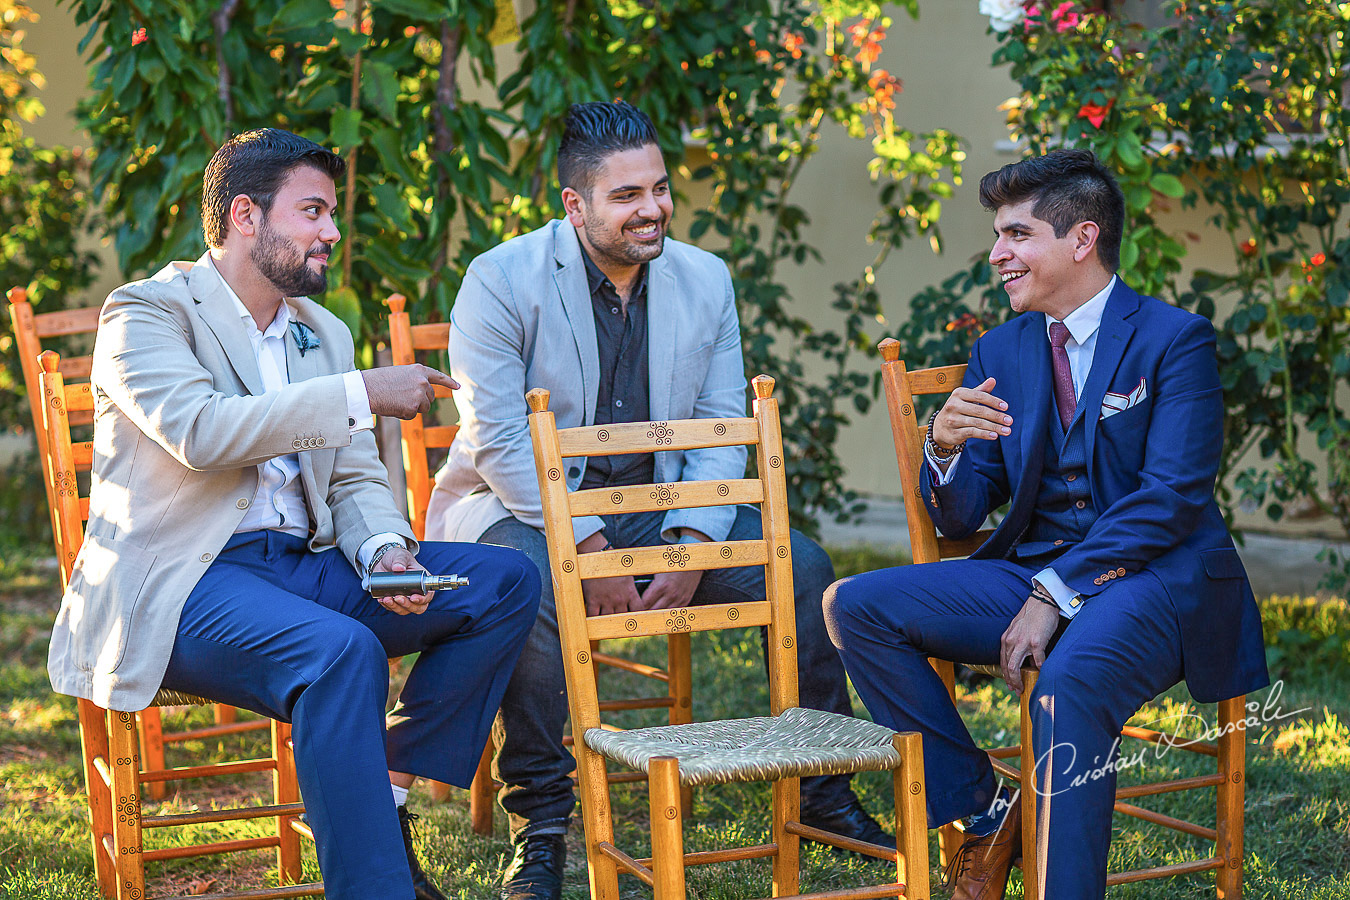 Guests laughing with the groom at a beautiful bohemian wedding in Trimiklini.